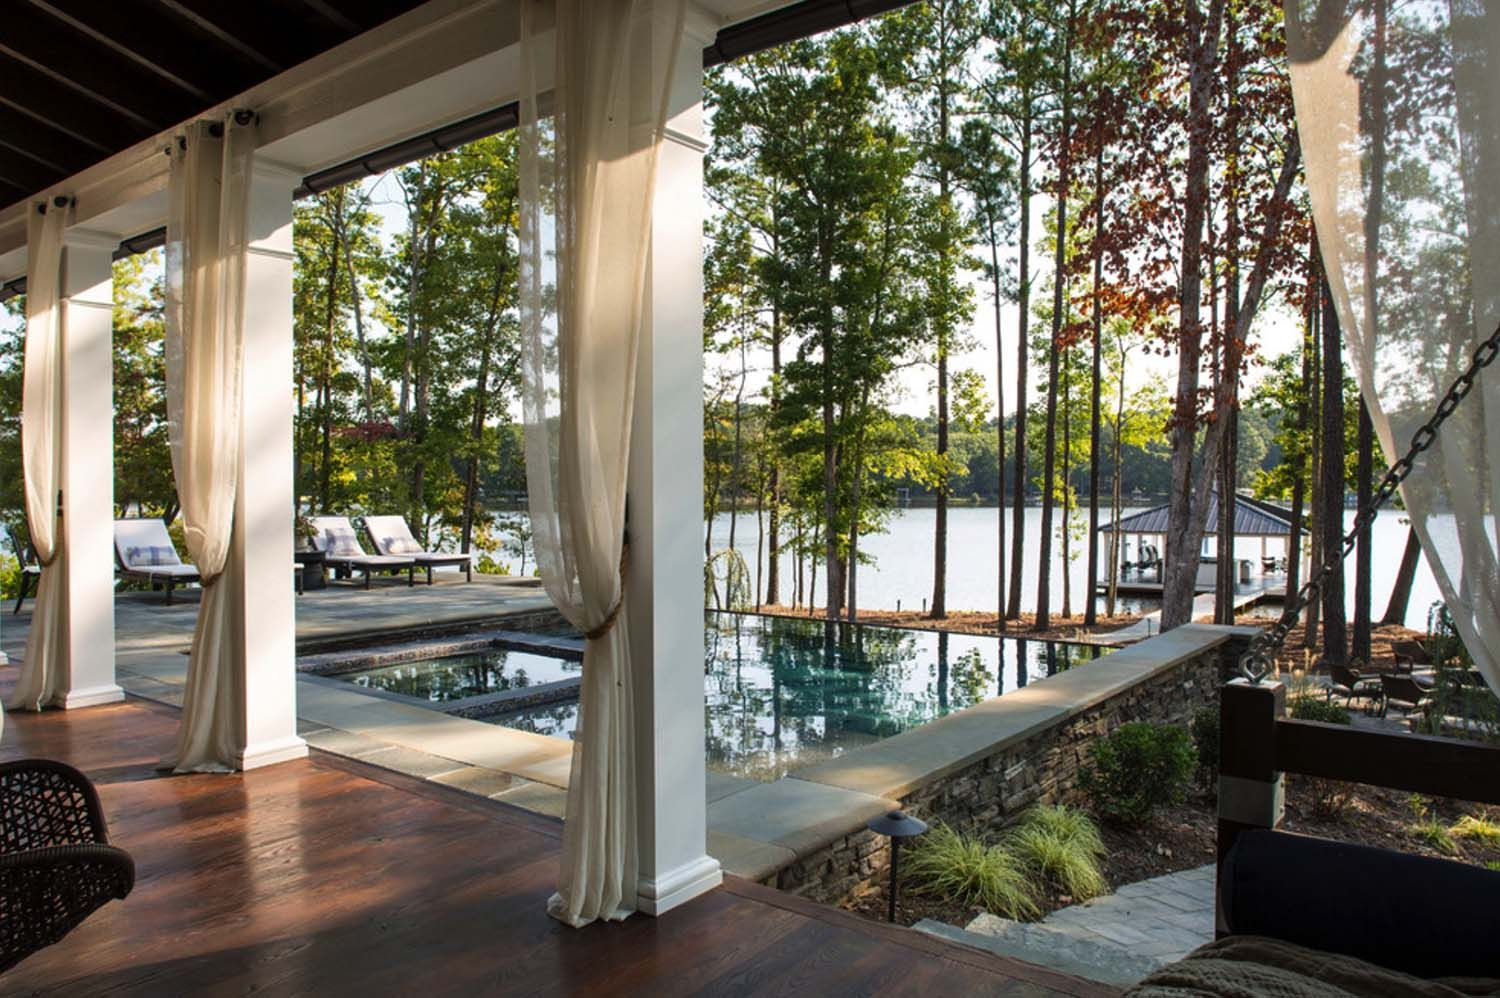 Mercer island luxury waterfront estate idesignarch interior design - 18004 Rosiers Creek Ln King George Va 22485 Beautiful Waterfront Home Sits High On A Bluff Overlooking Rosiers Creek 5 5 Acres With Waterviews